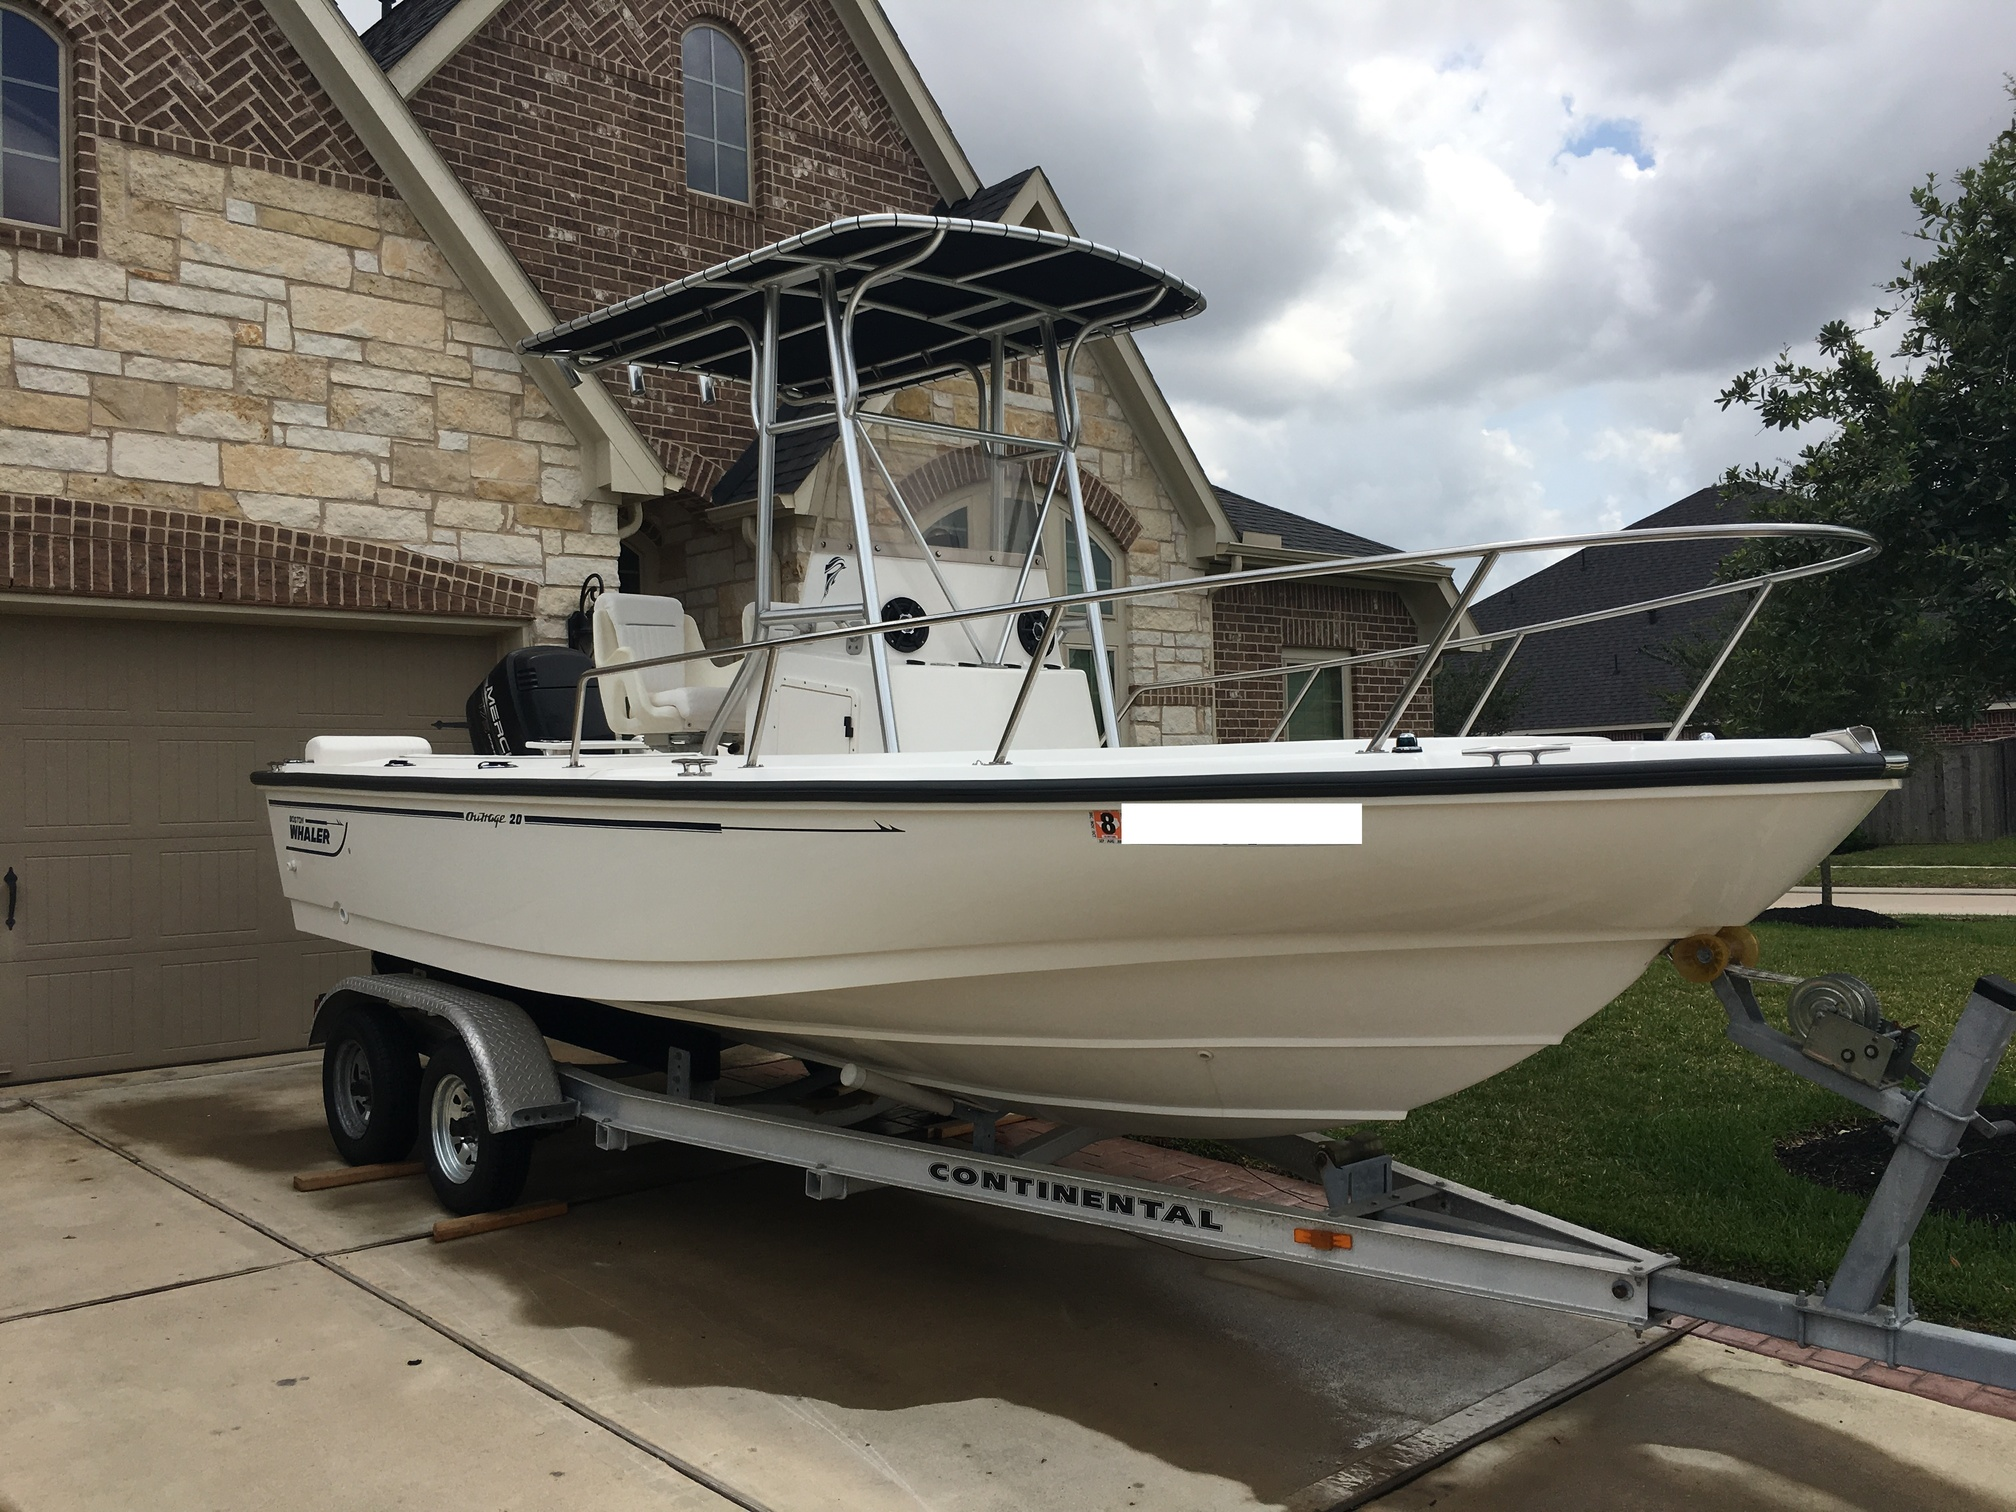 1998 Boston Whaler Outrage 20 FULLY RESTORED - $25,000 - Boats